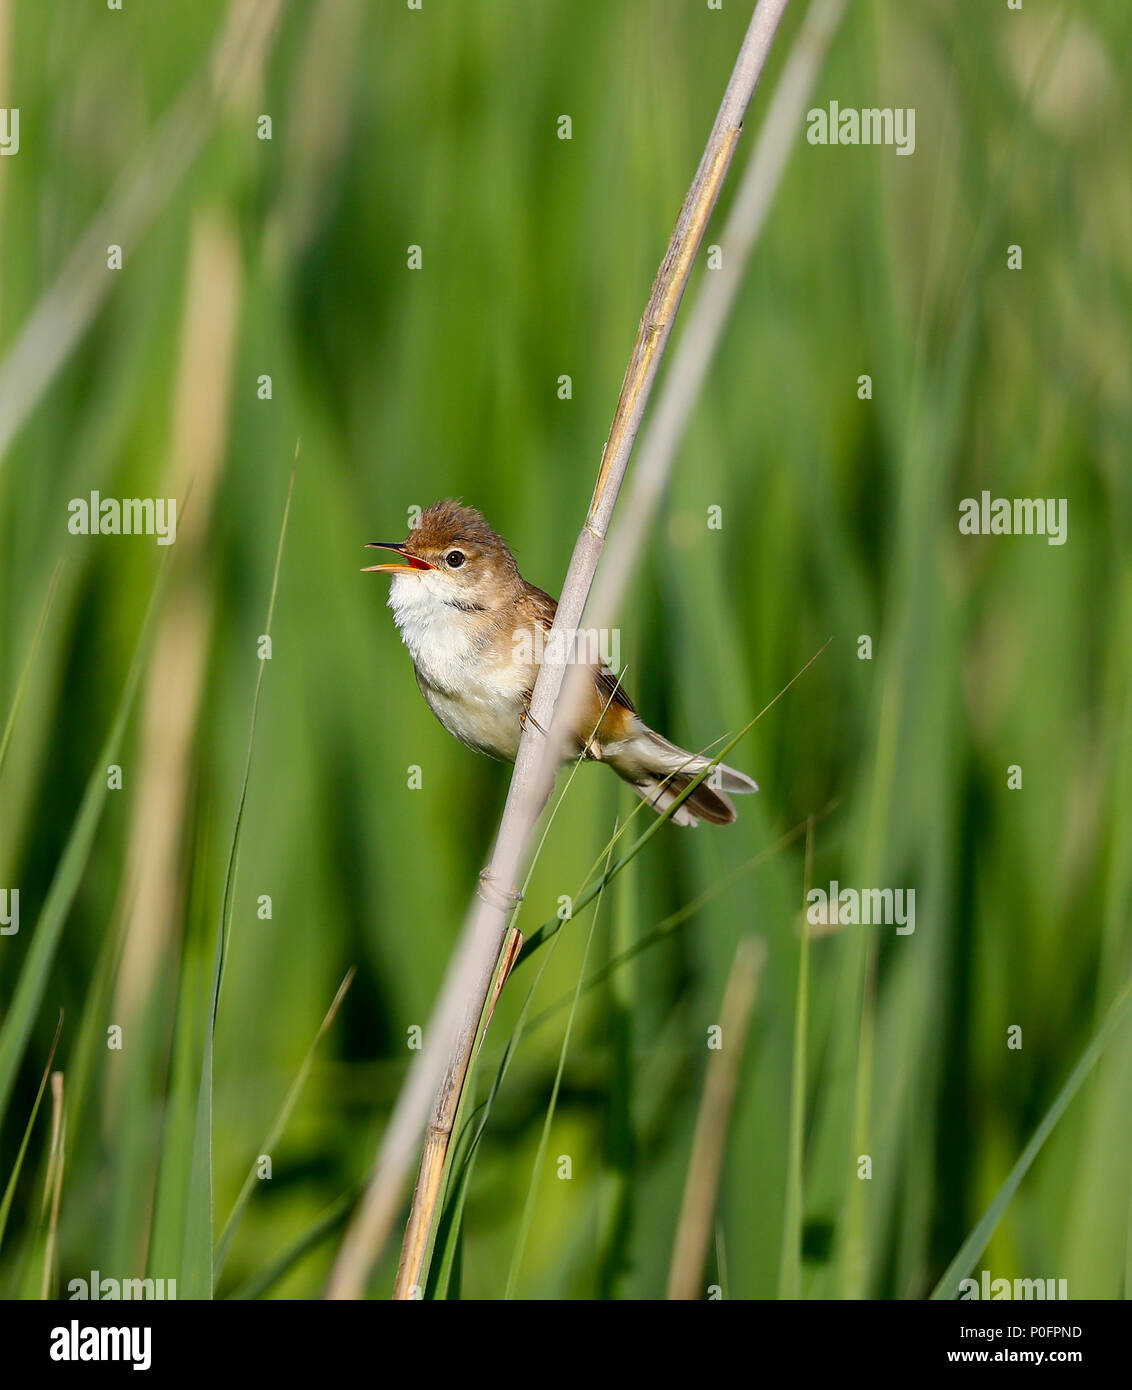 Reed Warbler (Acrocephalus scirpaceus) - Stock Image